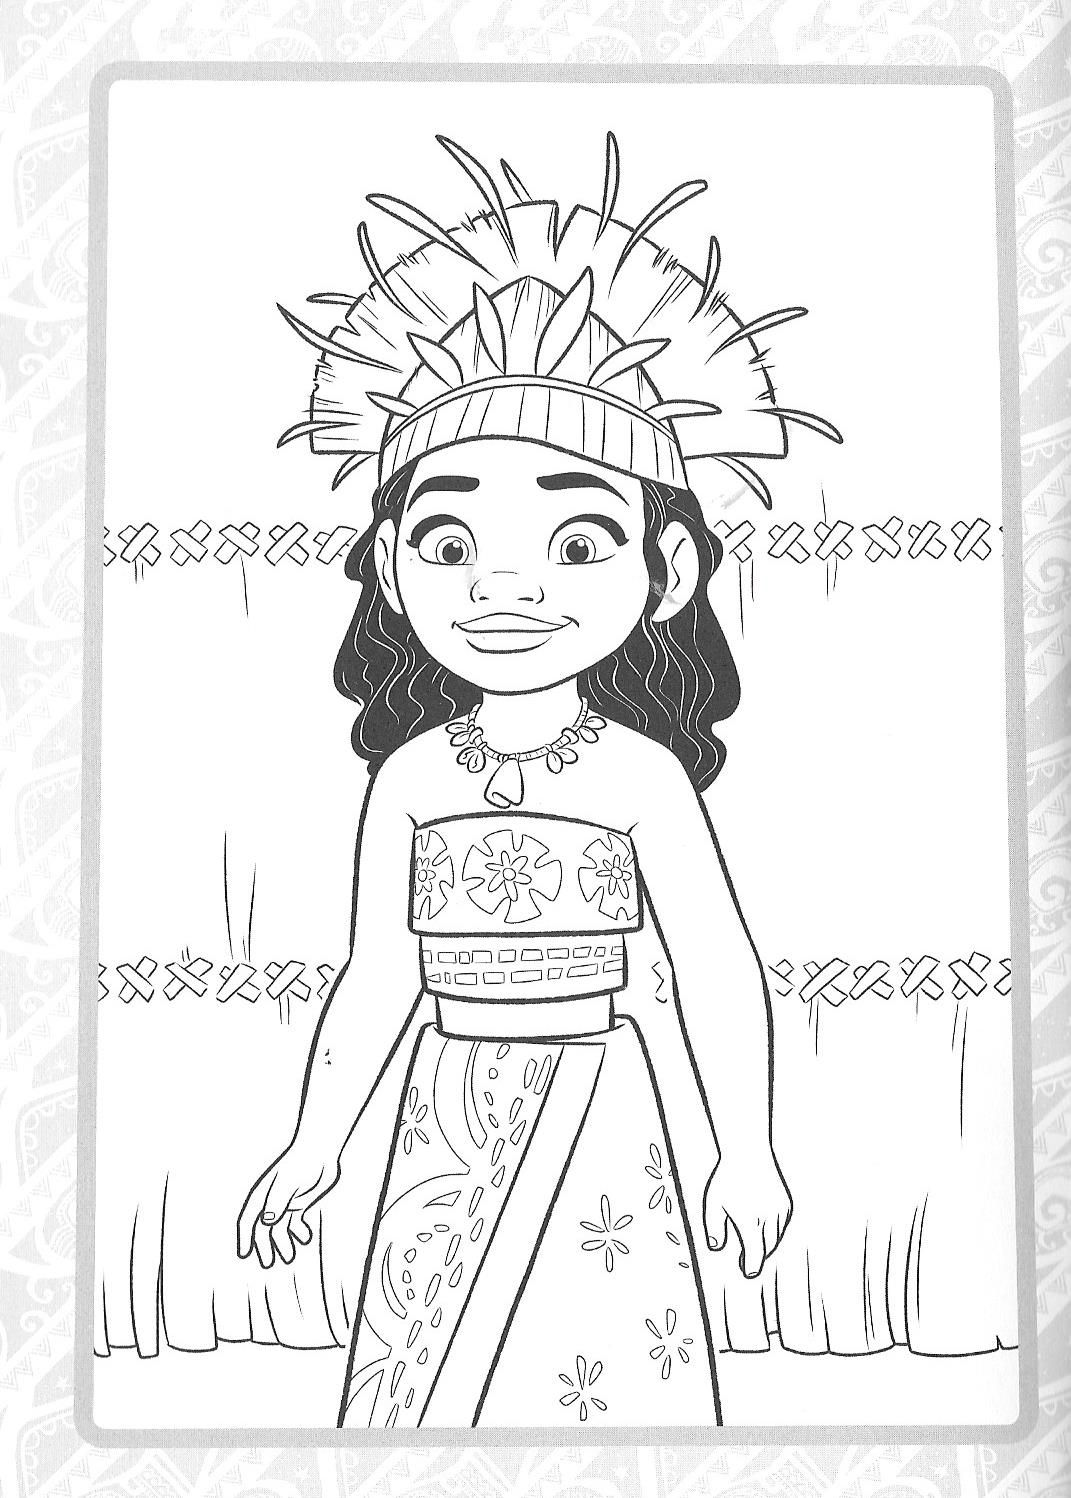 Pin By Delynn Graveline On Coloring Pages Disney Coloring Pages Moana Coloring Pages Moana Sketches [ 1498 x 1071 Pixel ]